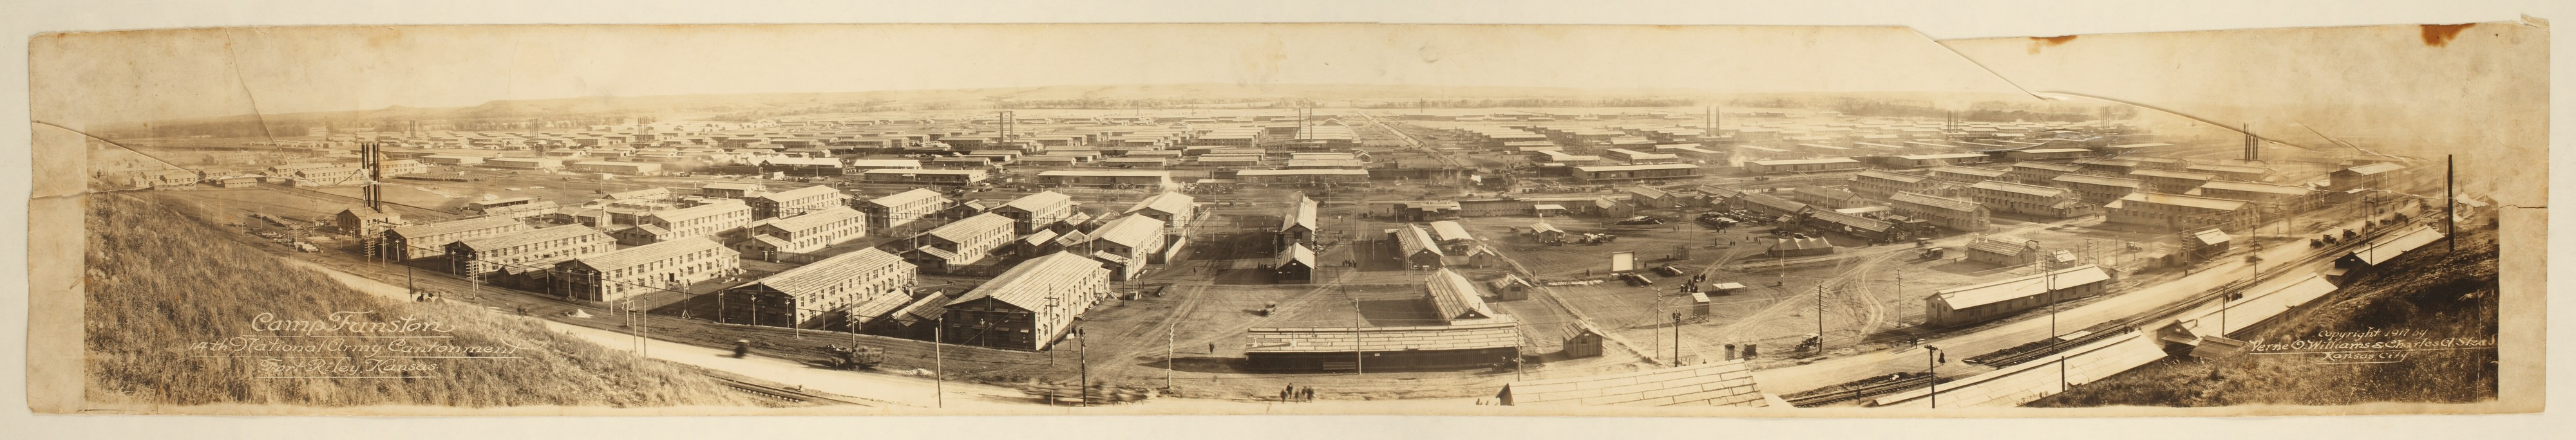 Camp Funston, 14th National Army Cantonment, Fort Riley, Kansas - 1